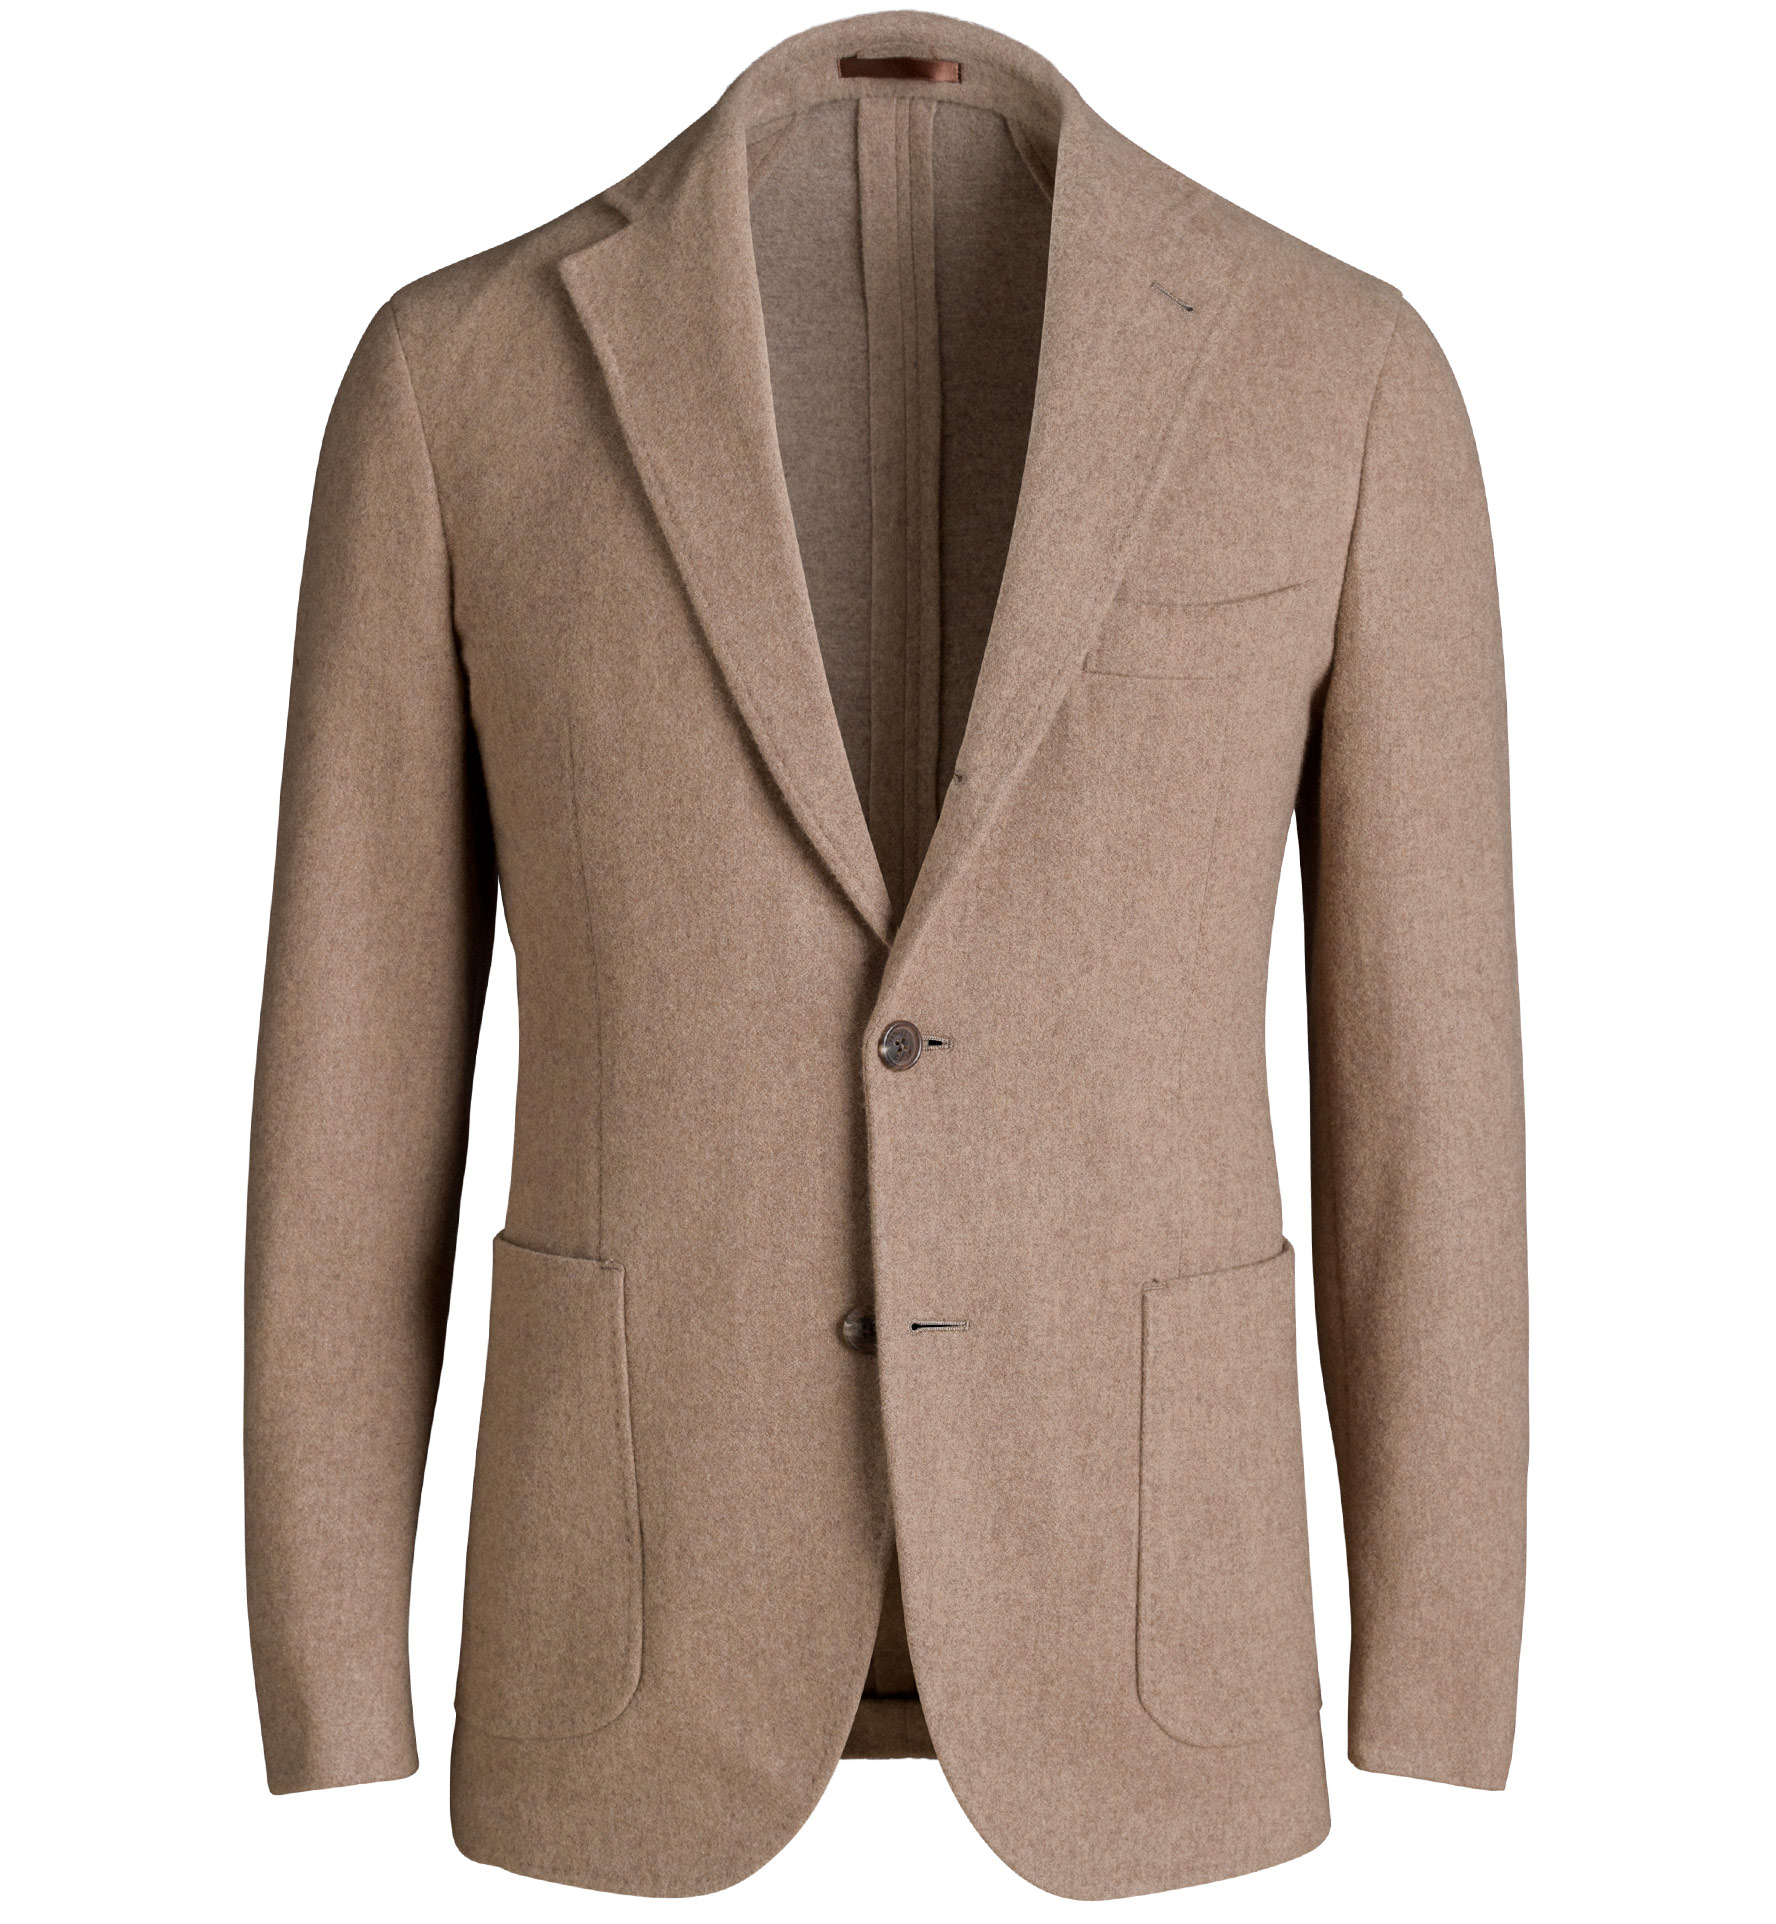 Zoom Image of Waverly Camel Double Faced Wool and Cashmere Jacket